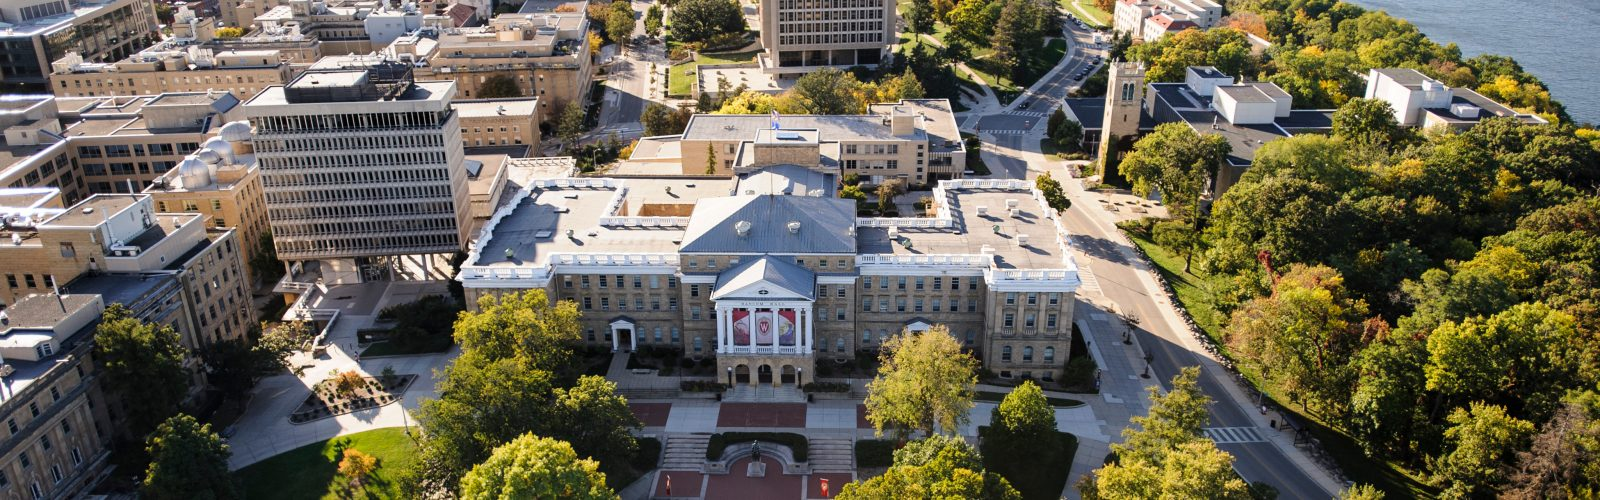 Bascom Hall, Bascom Hill and the central University of Wisconsin-Madison campus are pictured in an aerial view during autumn on Oct. 12, 2013. Clockwise from the left, major campus facilities include South Hall, Birge Hall, Van Vleck Hall, Van Hise Hall, Carillon Tower and North Hall. In the background at right is Lake Mendota. The photograph was made from a helicopter looking west. (Photo by Jeff Miller/UW-Madison)